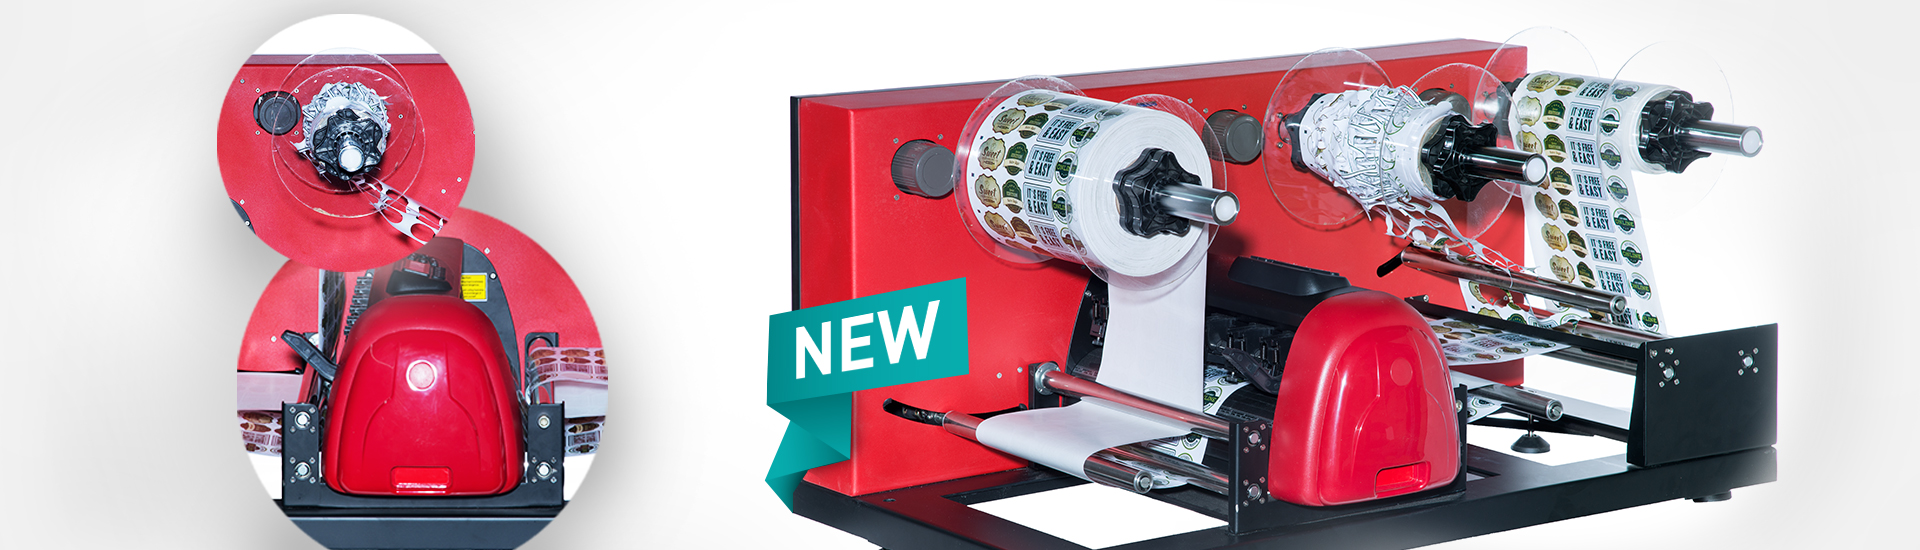 The new Secabo LC30 label cutter